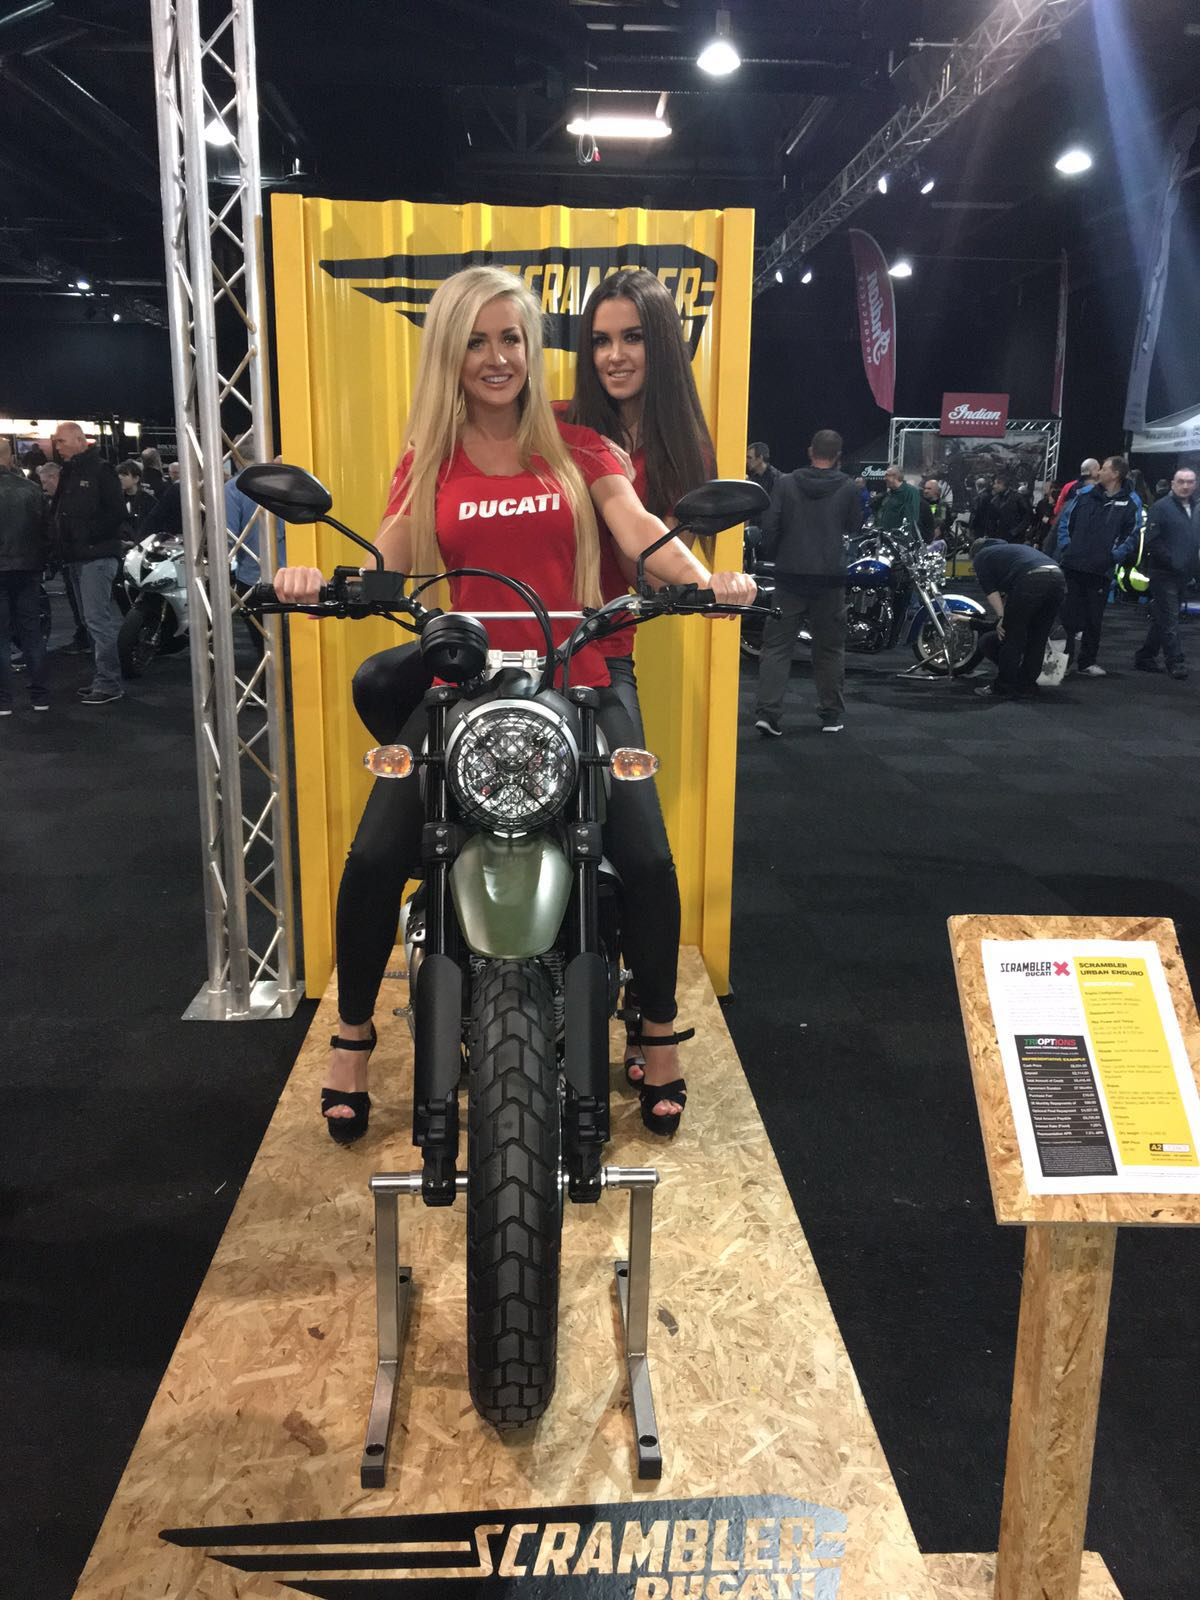 Ducati Manchester at the Manchester Motorcycle Show 2016